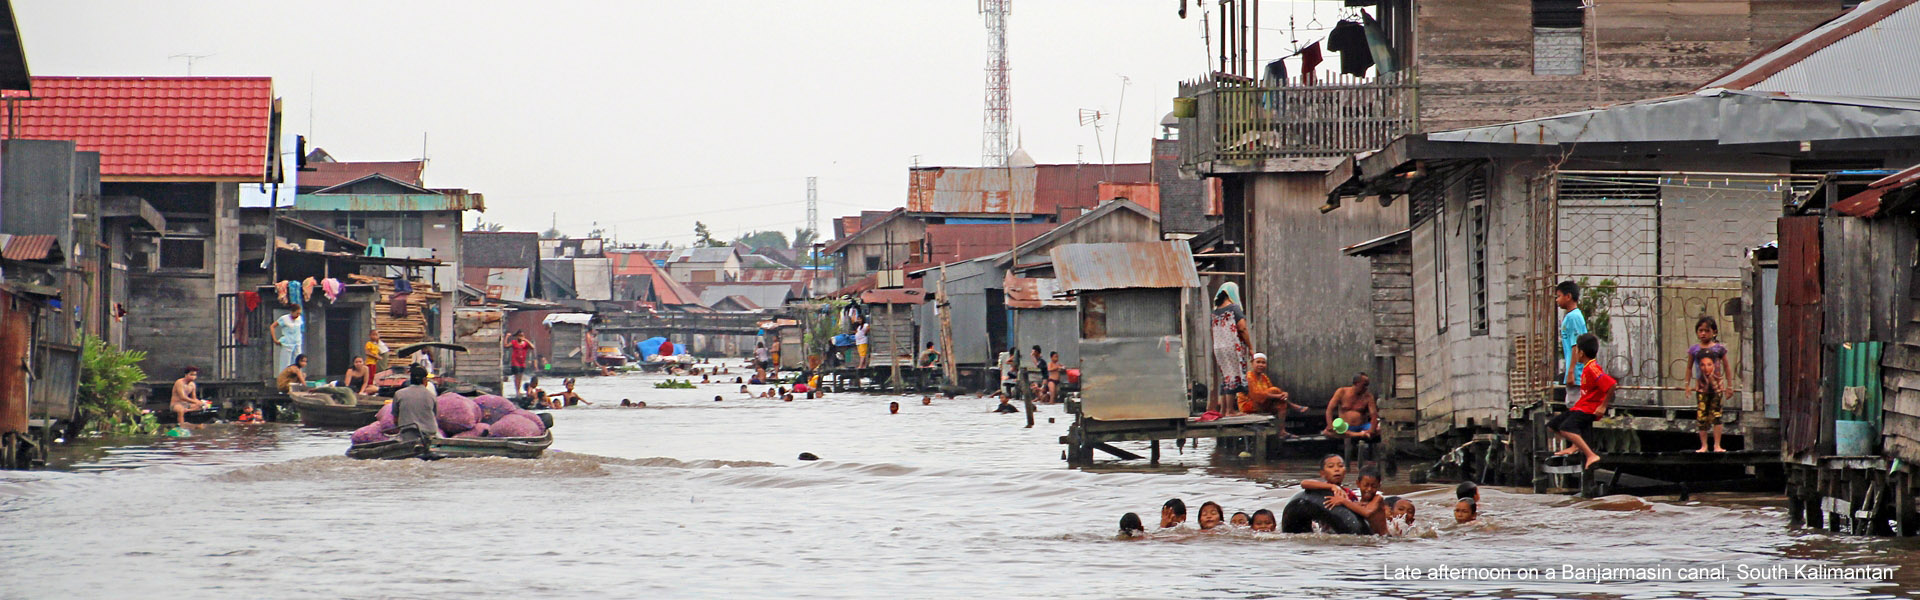 Banjarmasin canals, South Kalimantan, Indonesia